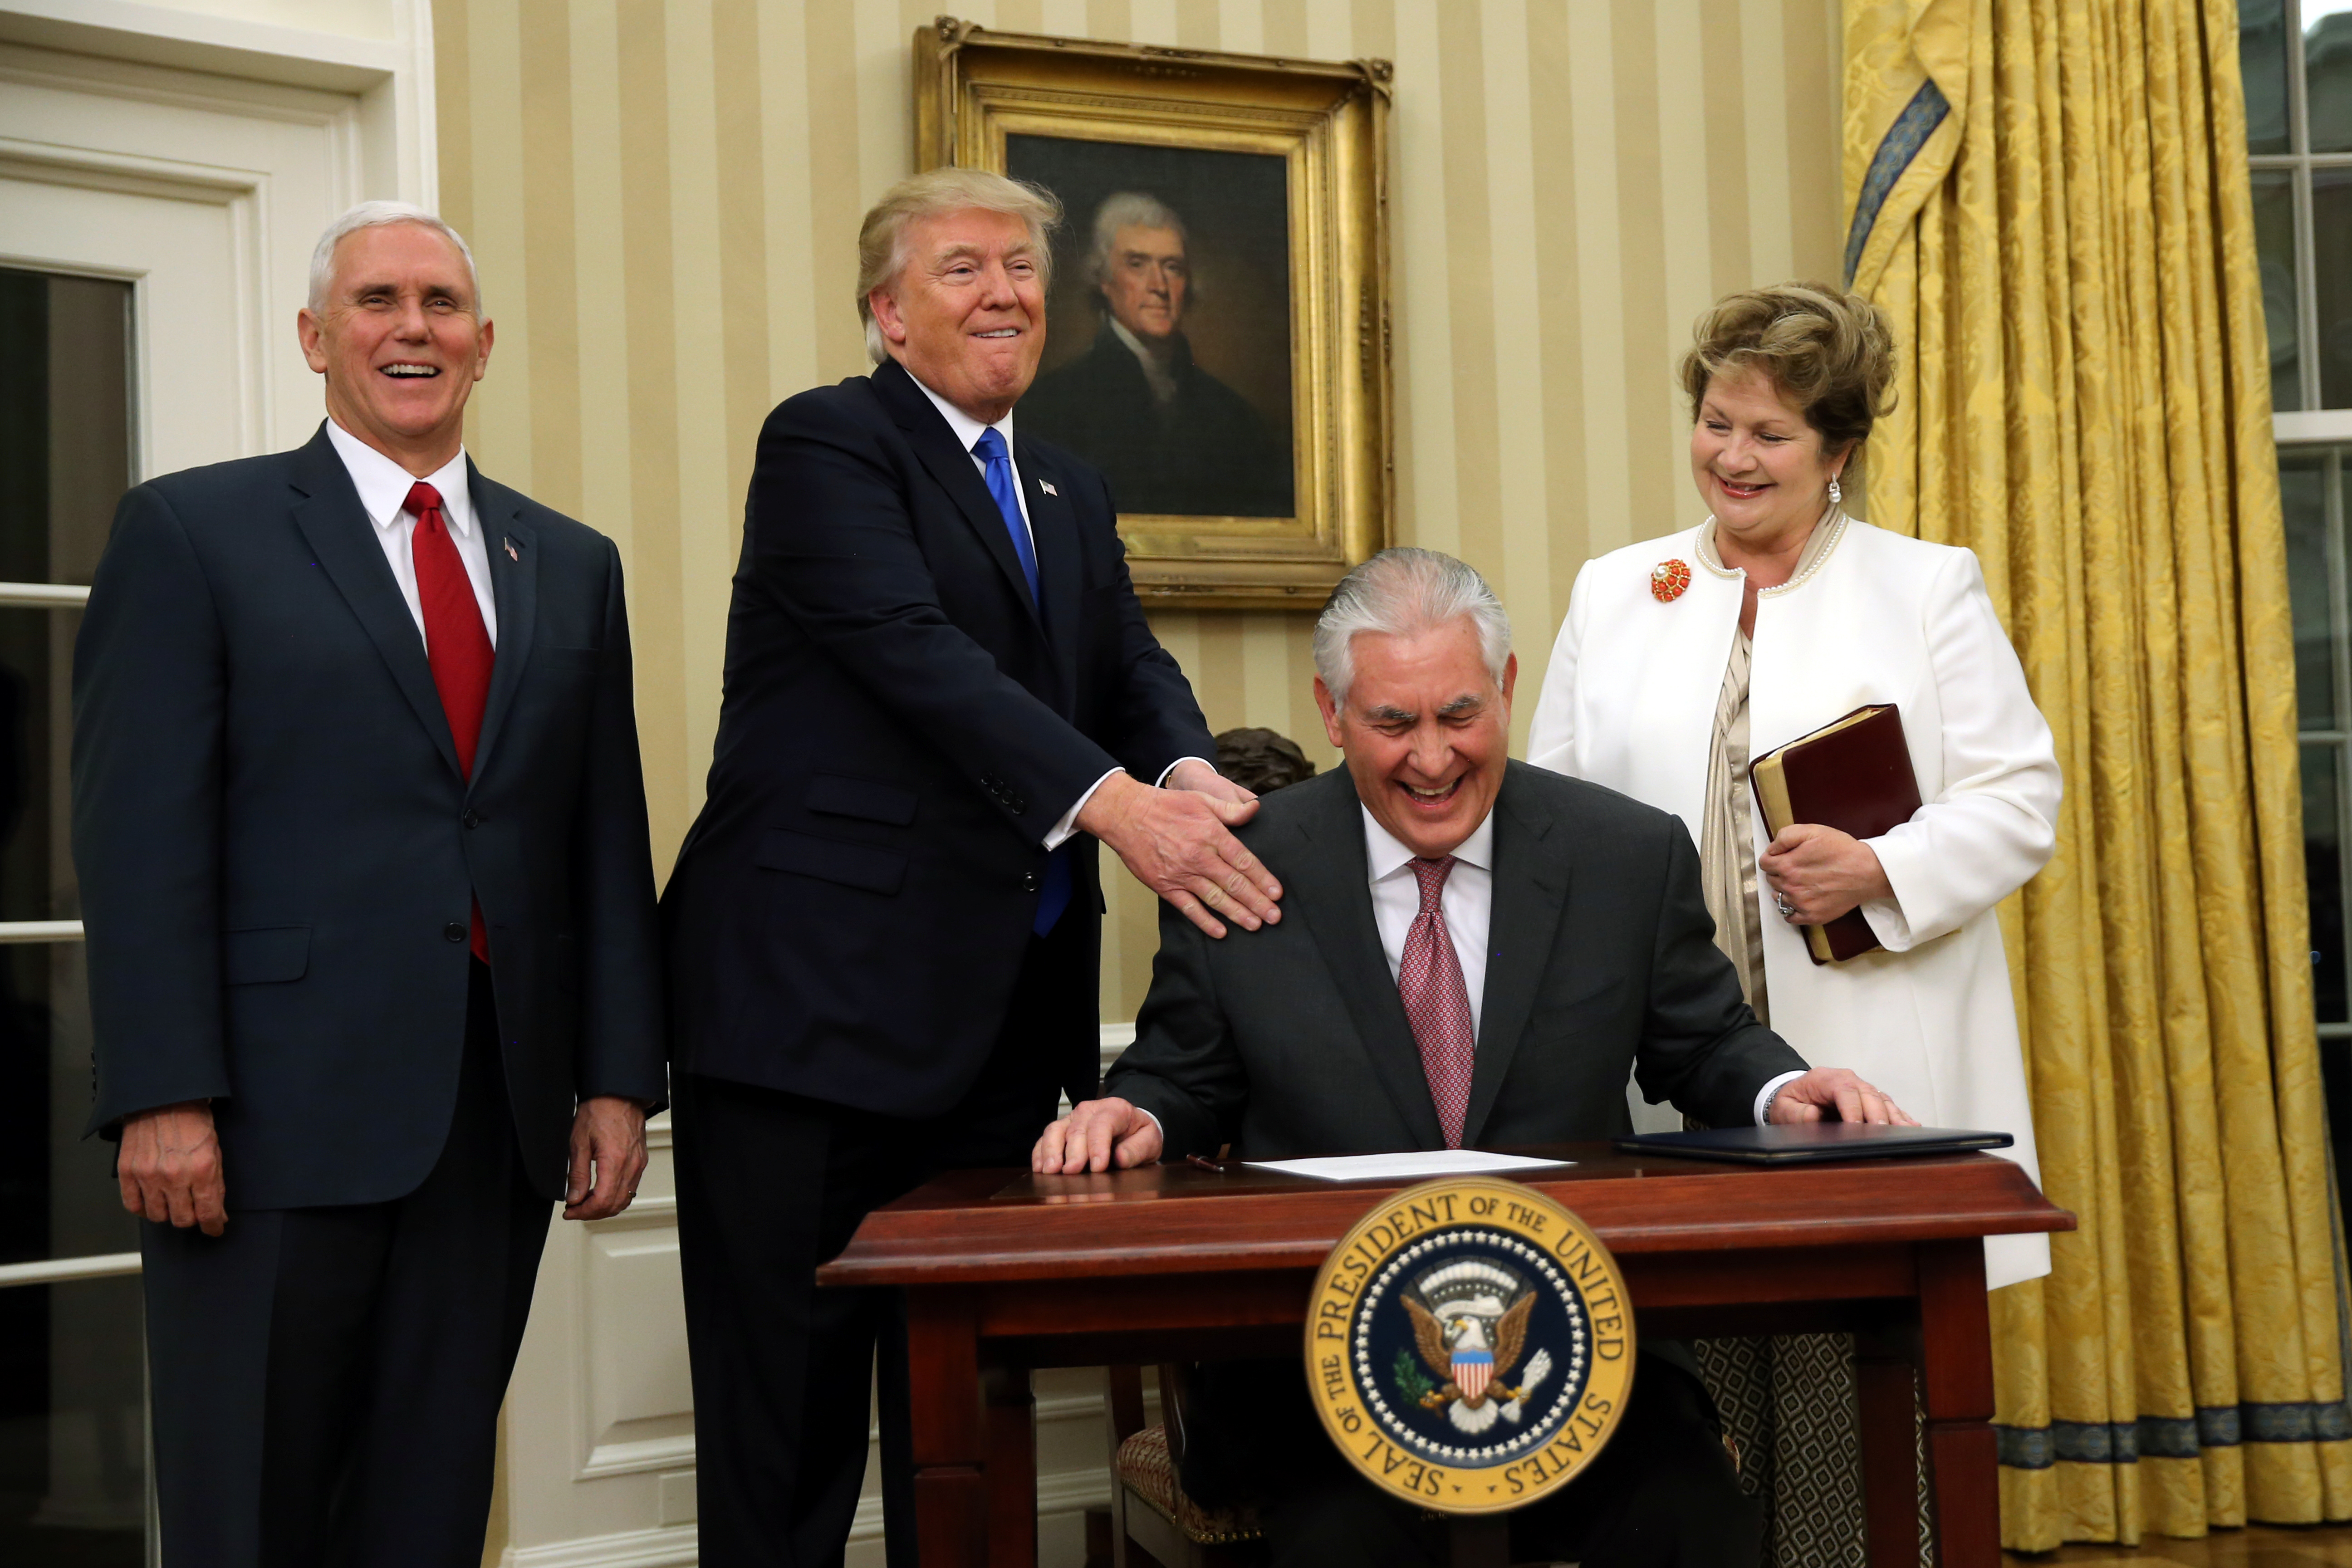 U.S. President Donald Trump reacts during the swearing in ceremony for new U.S. Secretary of State Rex Tillerson, accompanied by his wife Renda St. Clair and Vice President Mike Pence at the Oval Office of the White House in Washington, DC